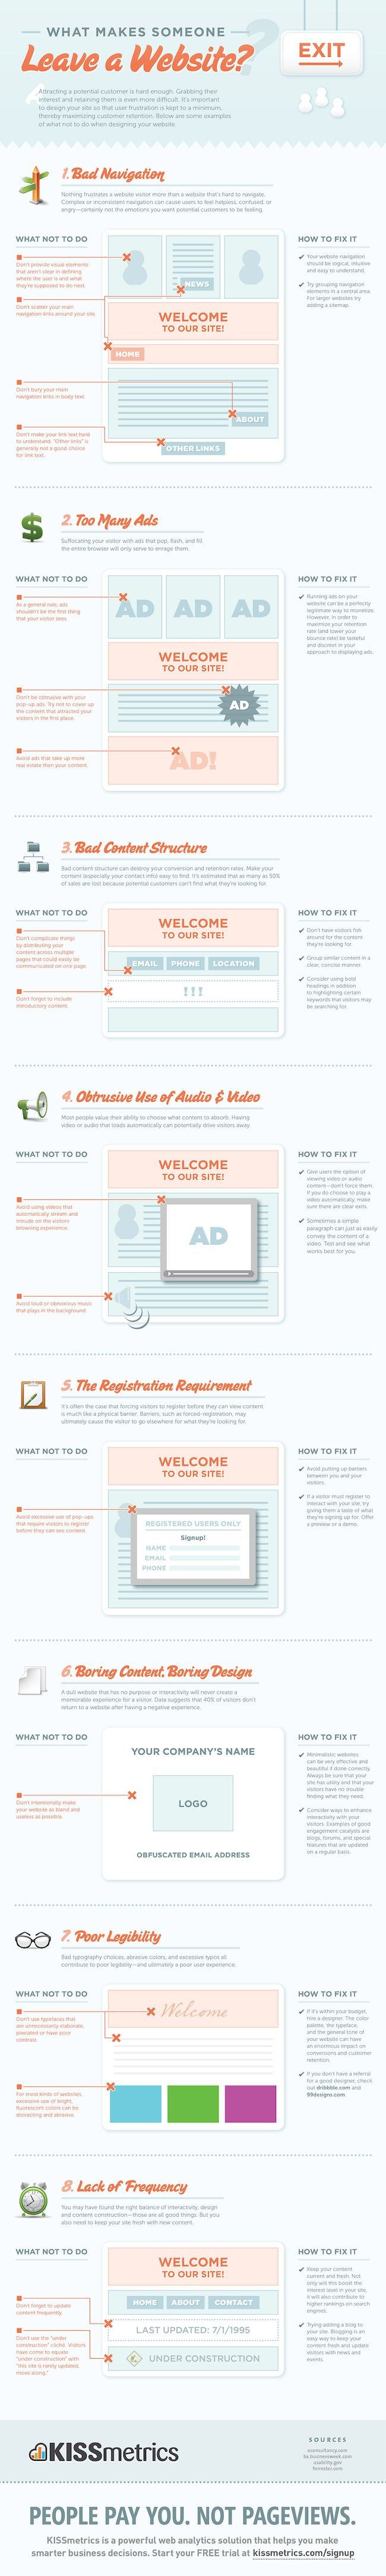 What Makes Someone Leave a Website? [Infographic], via @HubSpot